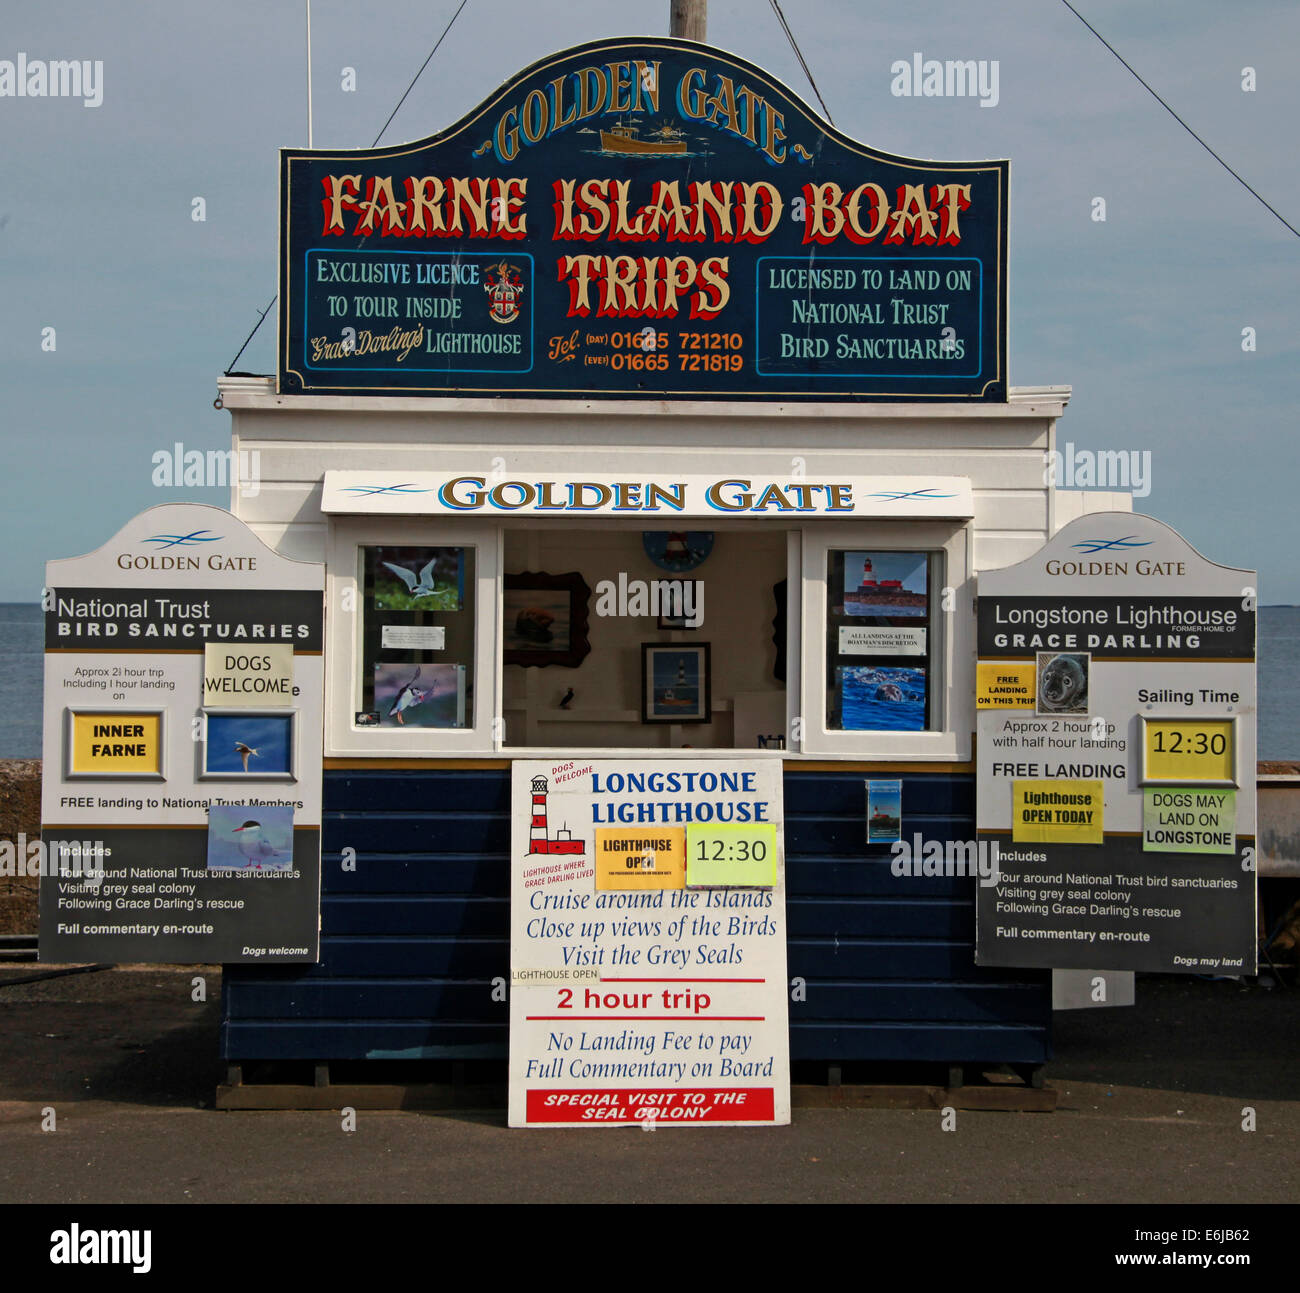 Tickets being sold from Golden Gate Boat sheds at Seahouses, for Farne Island trips, NE England, UK - Stock Image